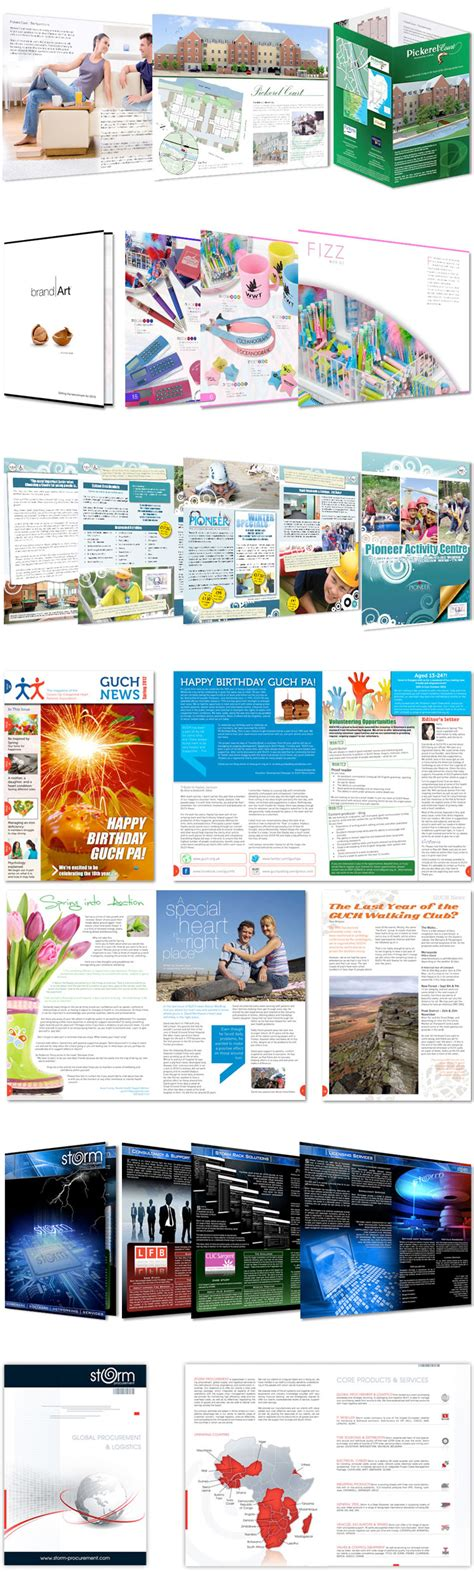 leaflet design essex brochure design essex footsteps design ltd